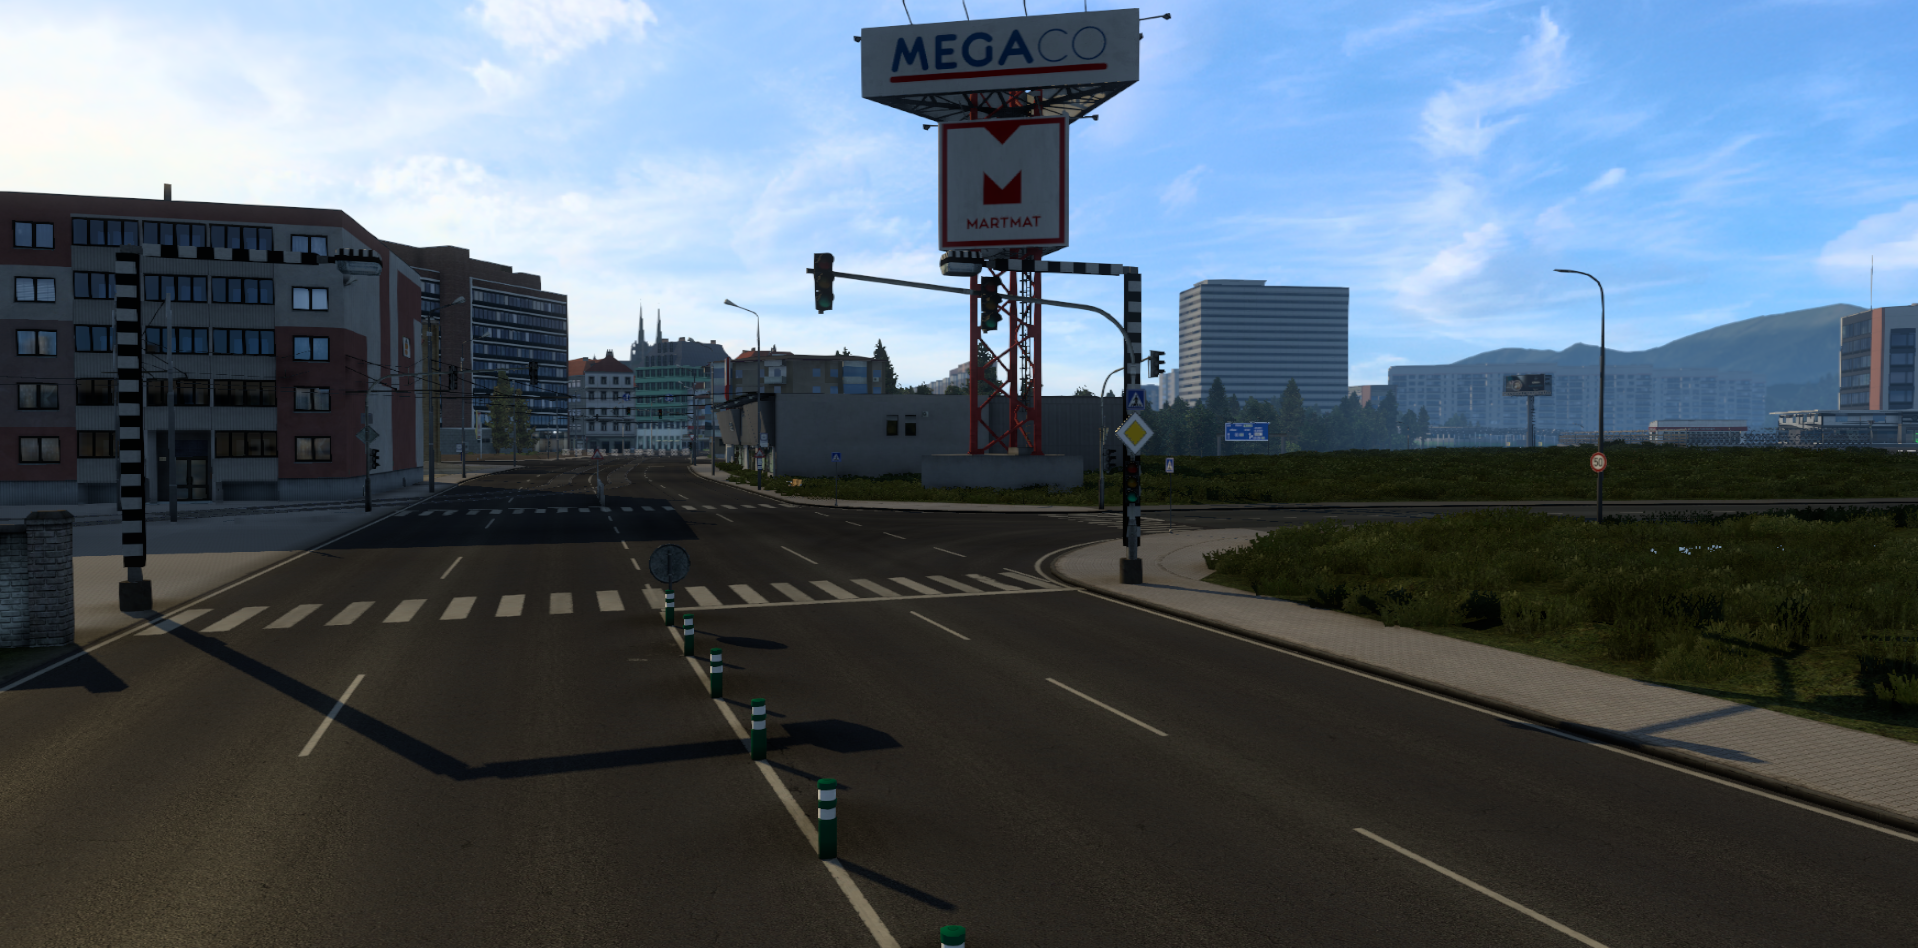 ets2_20210326_203756_00.png